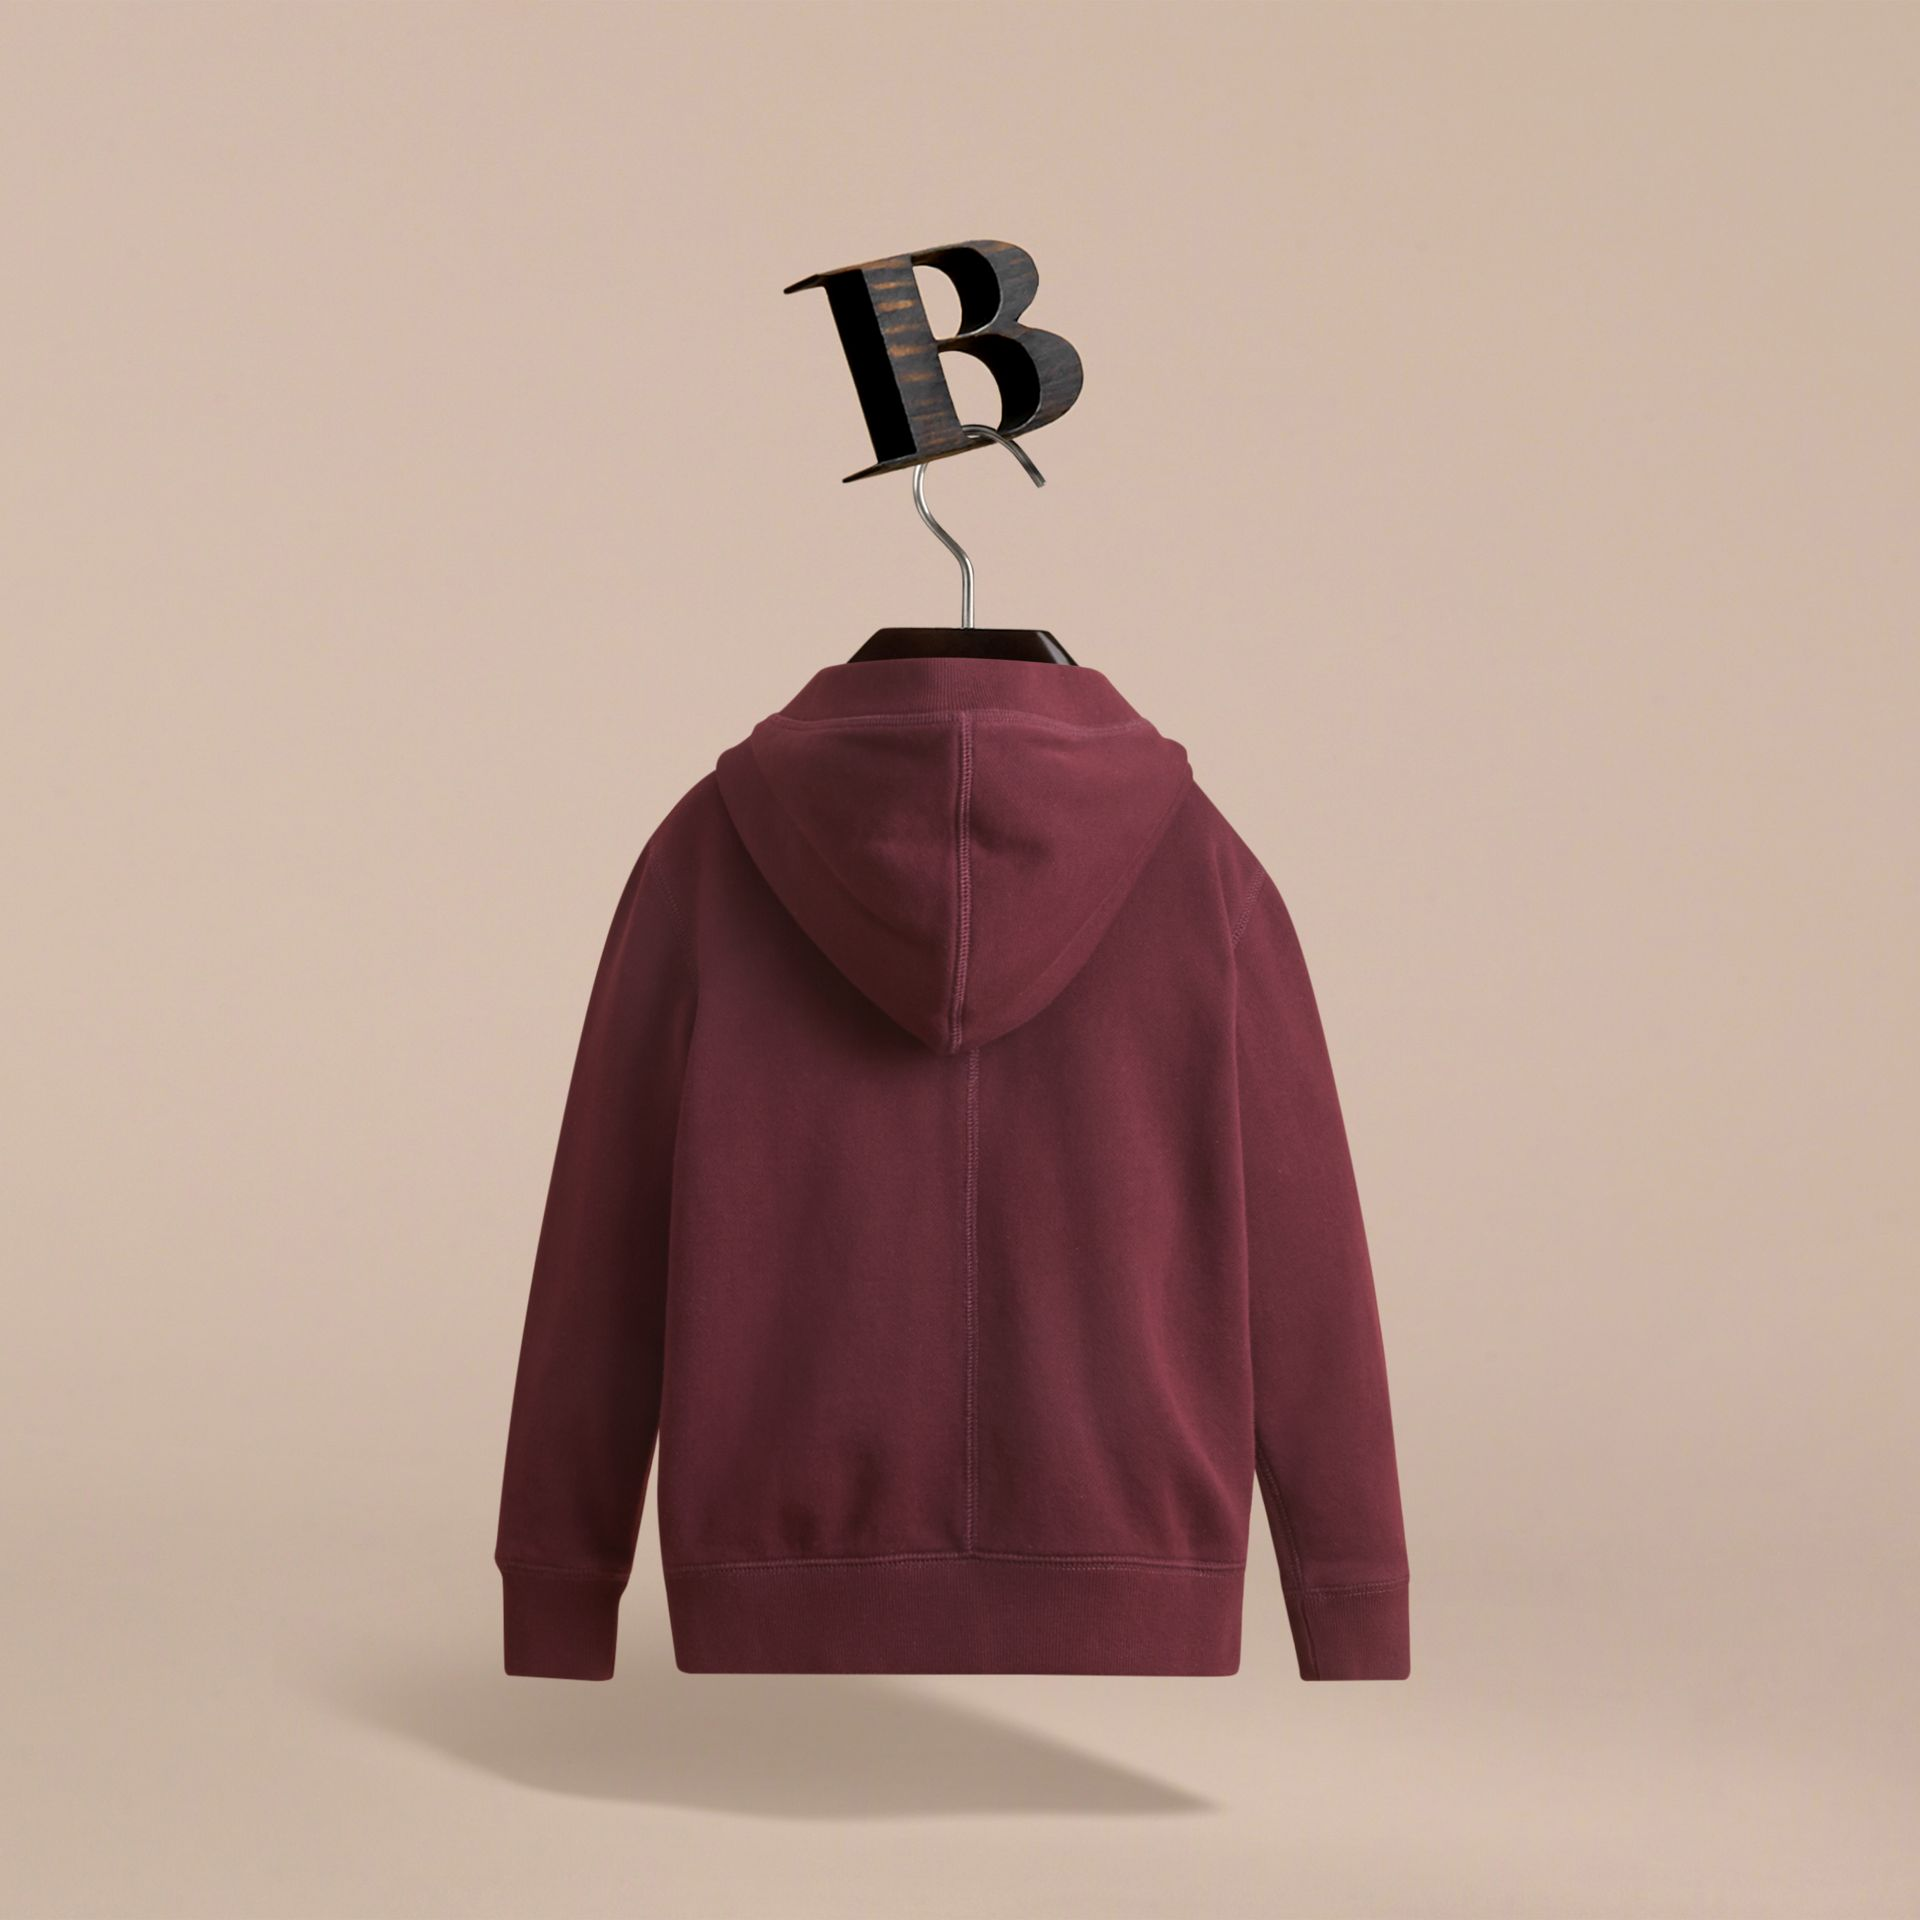 Hooded Cotton Top in Burgundy - Boy | Burberry Hong Kong - gallery image 4